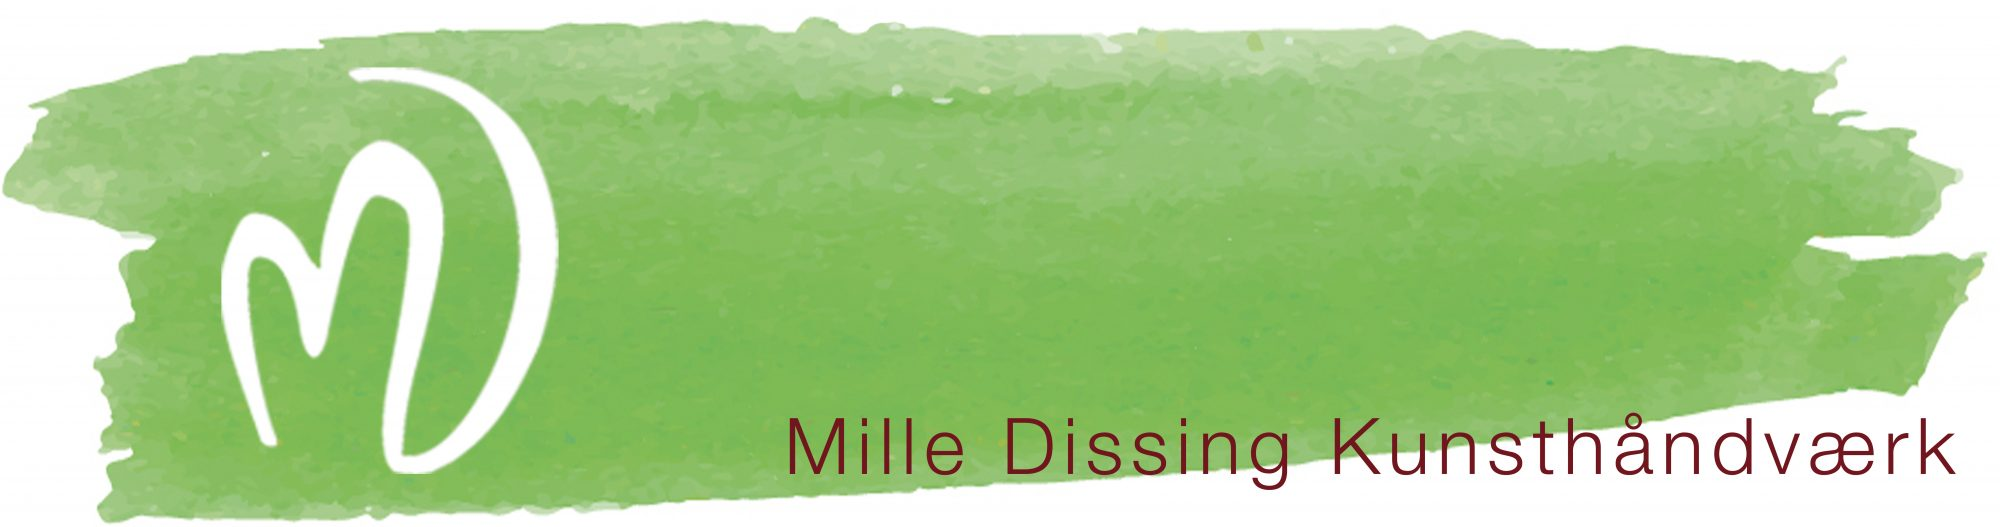 Mille Dissing